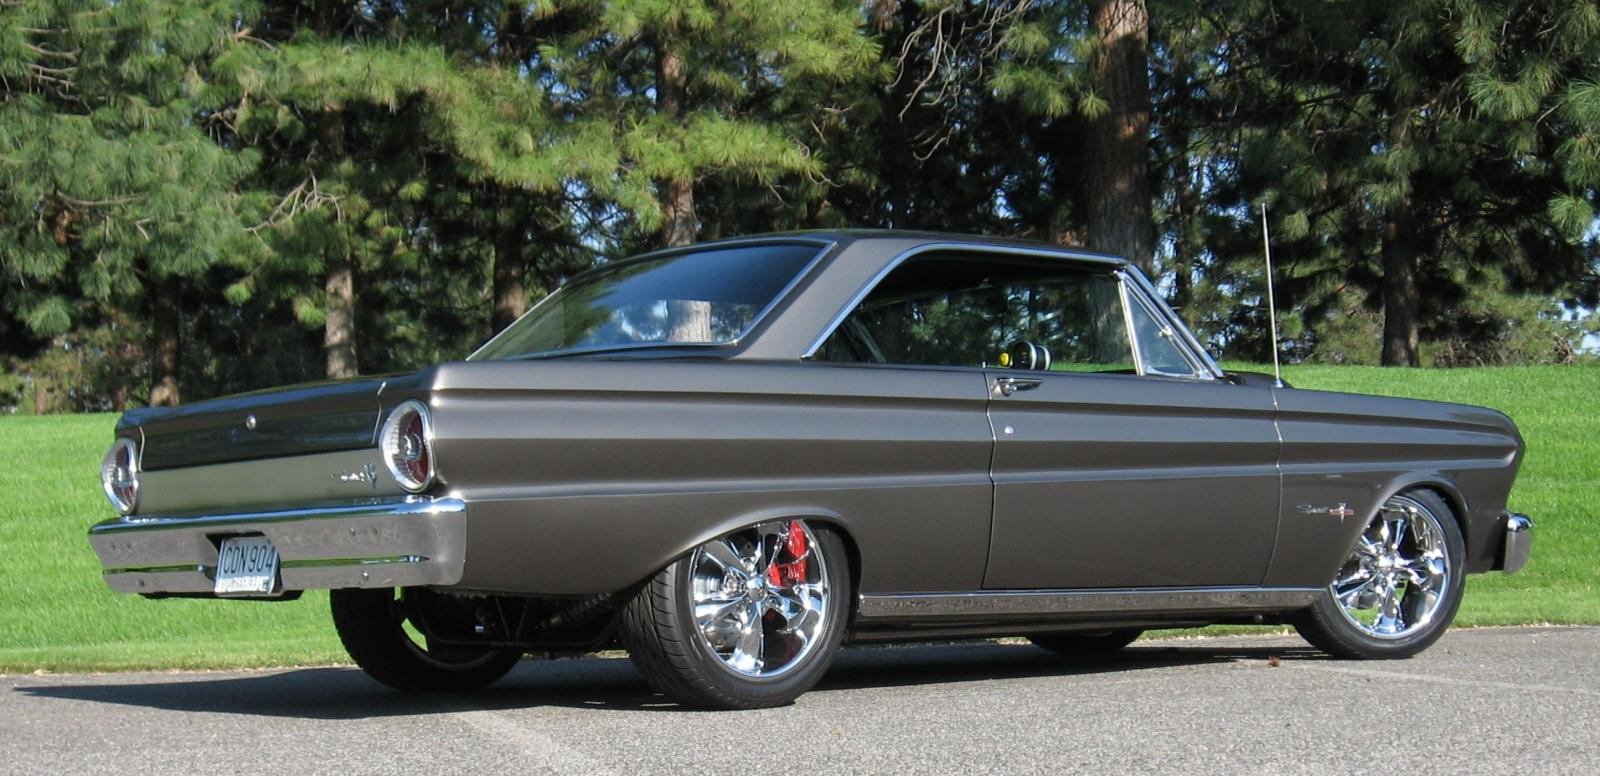 1963 Ford Falcon Futura For Sale In Cordova Tennessee 38016 additionally Ford Galaxie 500 Xl Cobra furthermore 78402 New Here Just Wanted To Say Hello And Show My Ride besides 1966 Ford Falcon Convertible also Camaro Unibody Frame Dimensions. on 1966 falcon sprint